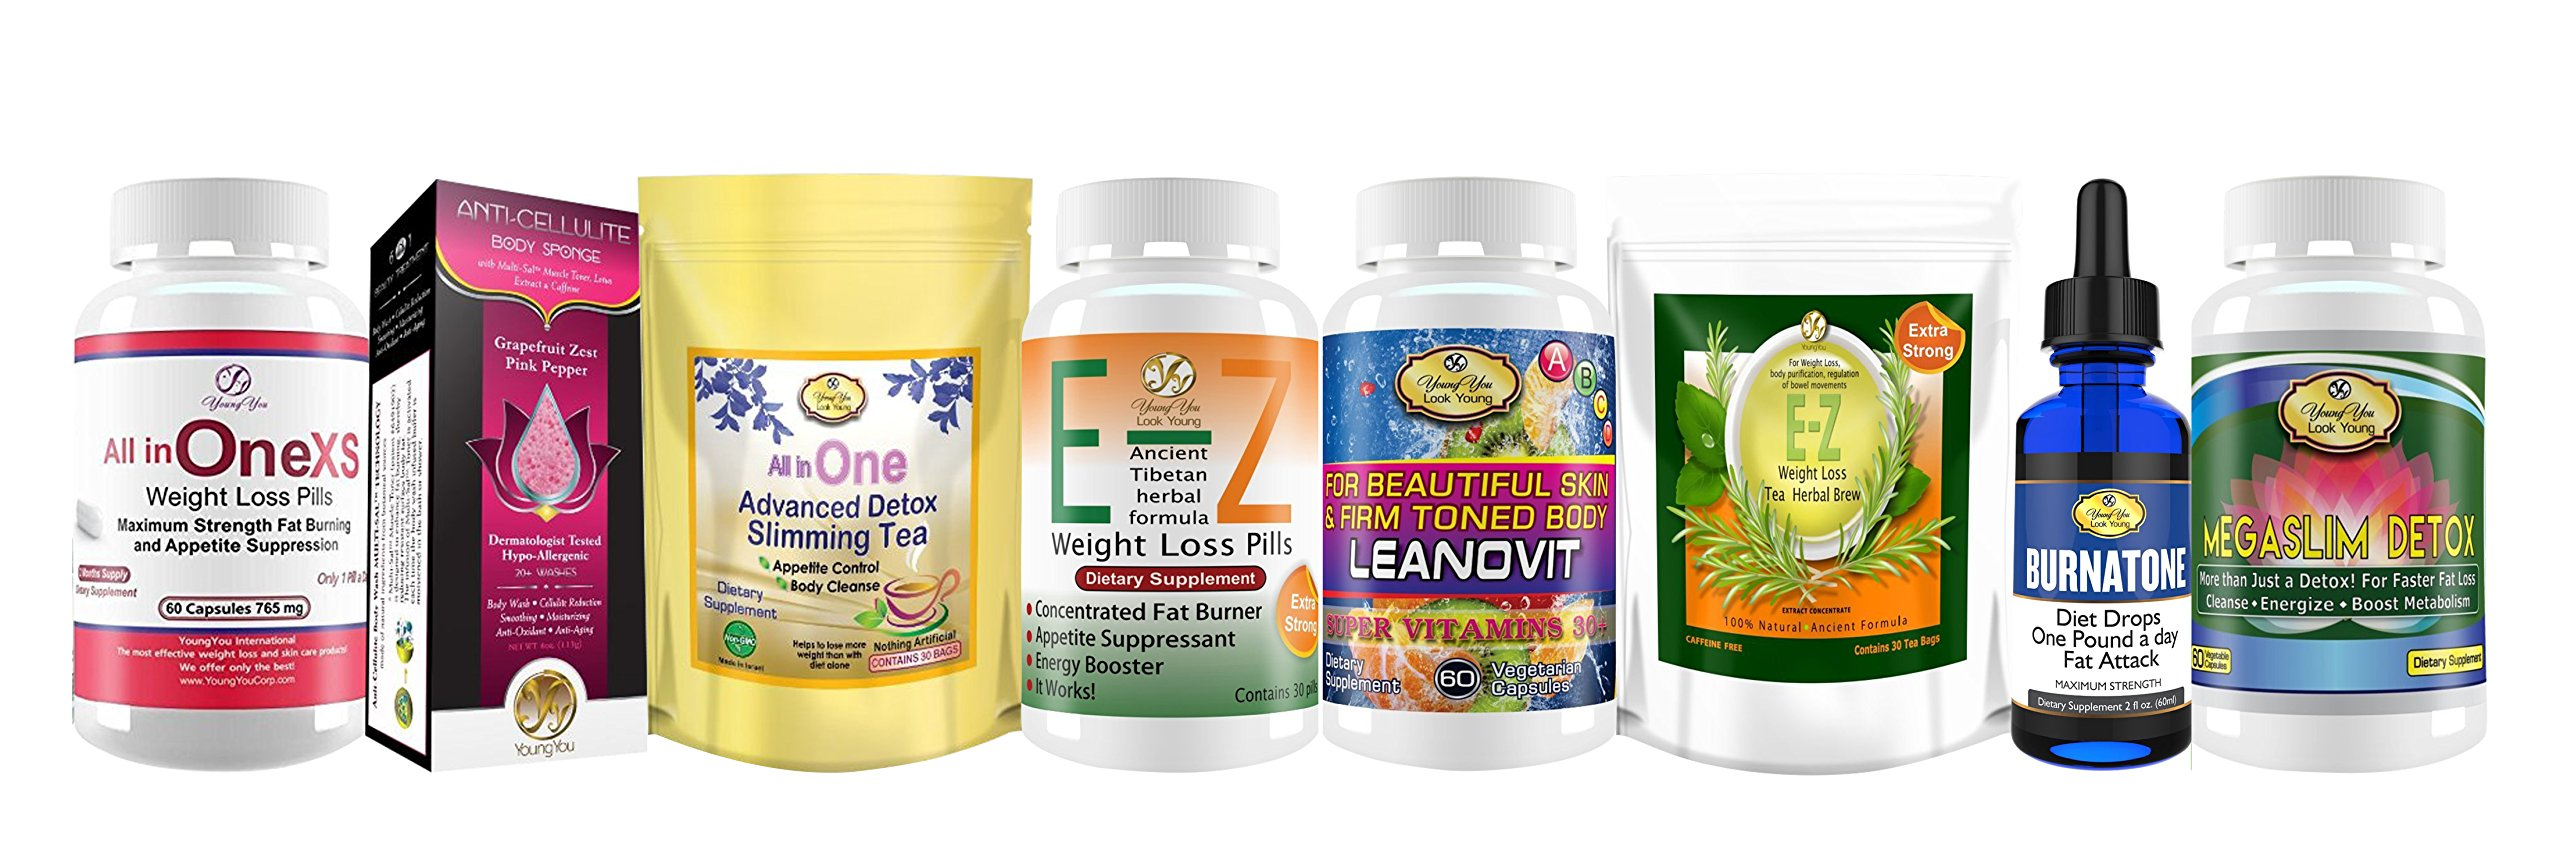 Weight Loss Package- All in One Diet pills, Anti cellulite sponge.All in One Detox Diet Tea. E-Z Weight Loss Pills. Women Multivits.E-Z Teatox.Burnatone Diet Drops. Megaslim Body Detox pills.Save $50